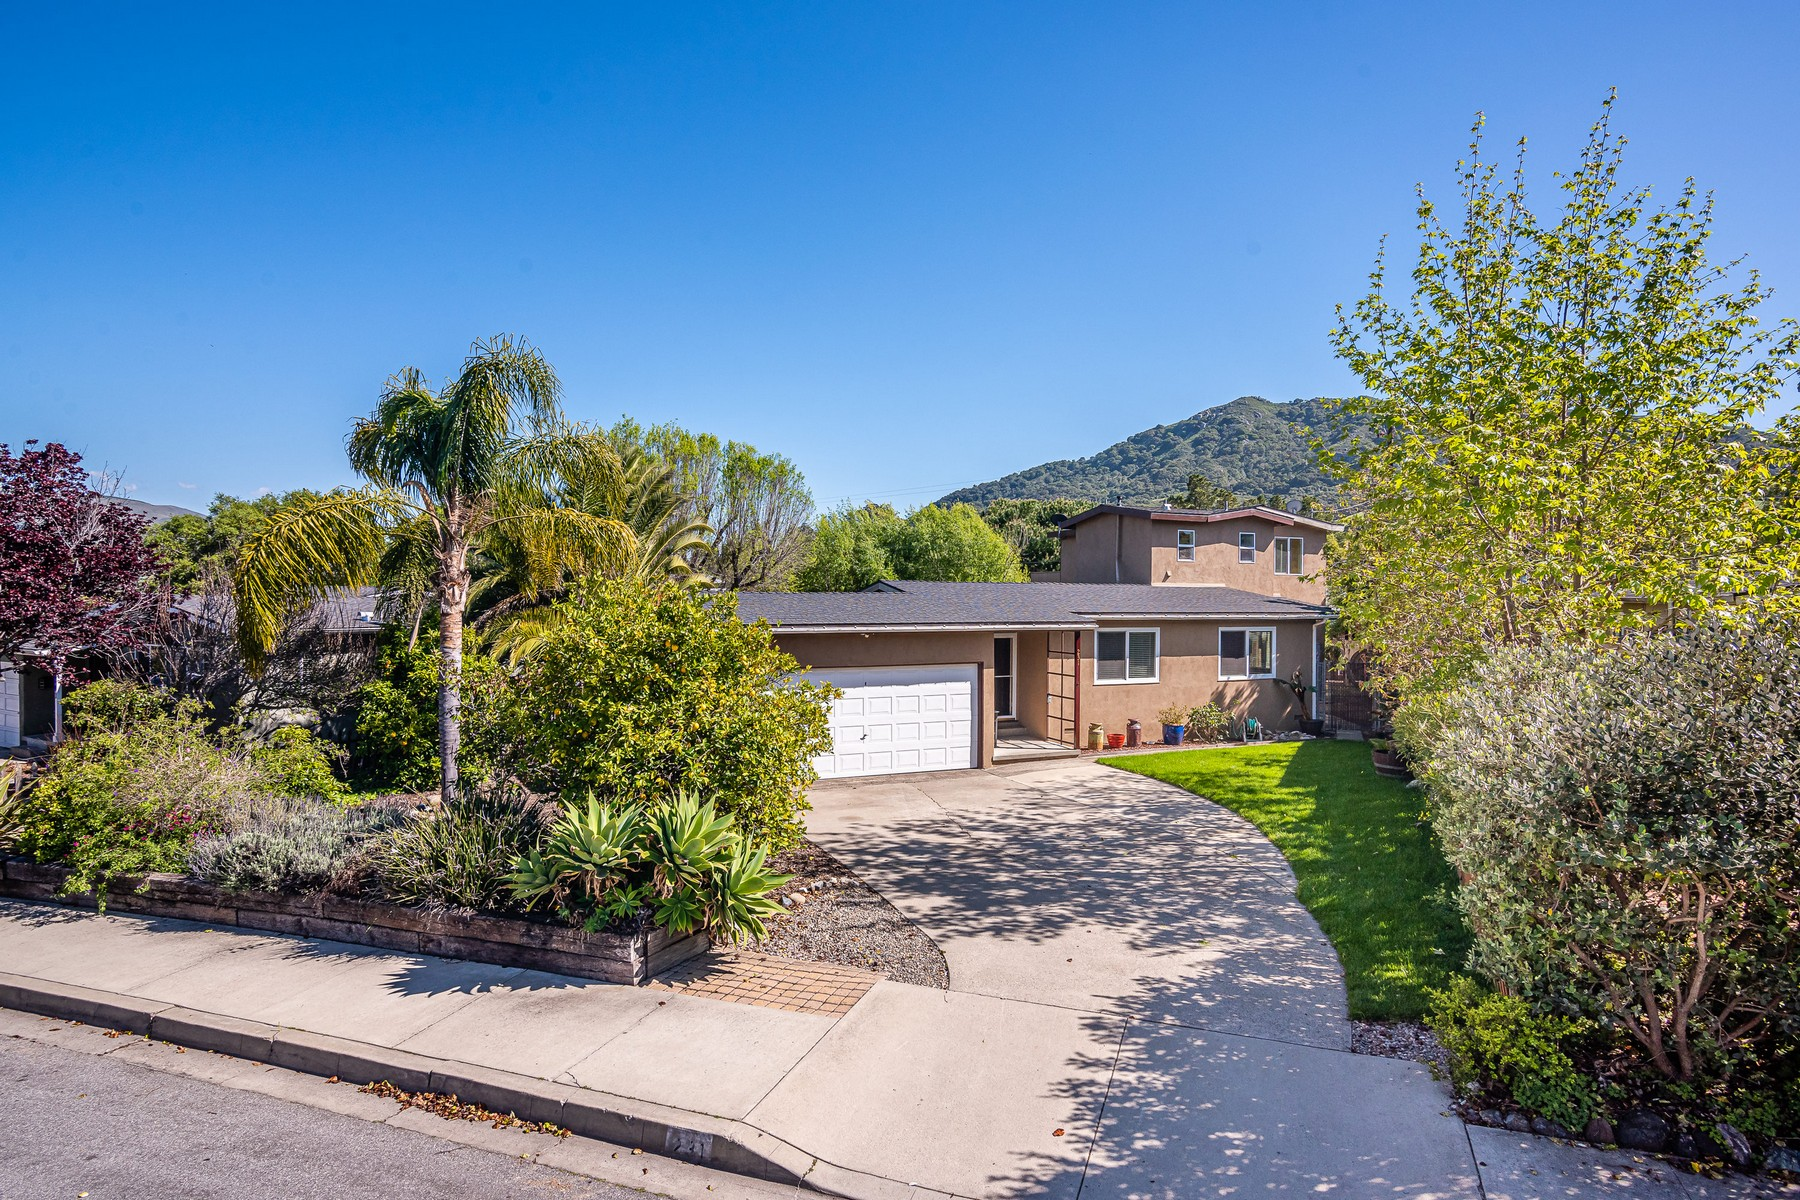 Single Family Homes for Sale at Ferrini Heights Home with Views 231 Craig Way San Luis Obispo, California 93405 United States